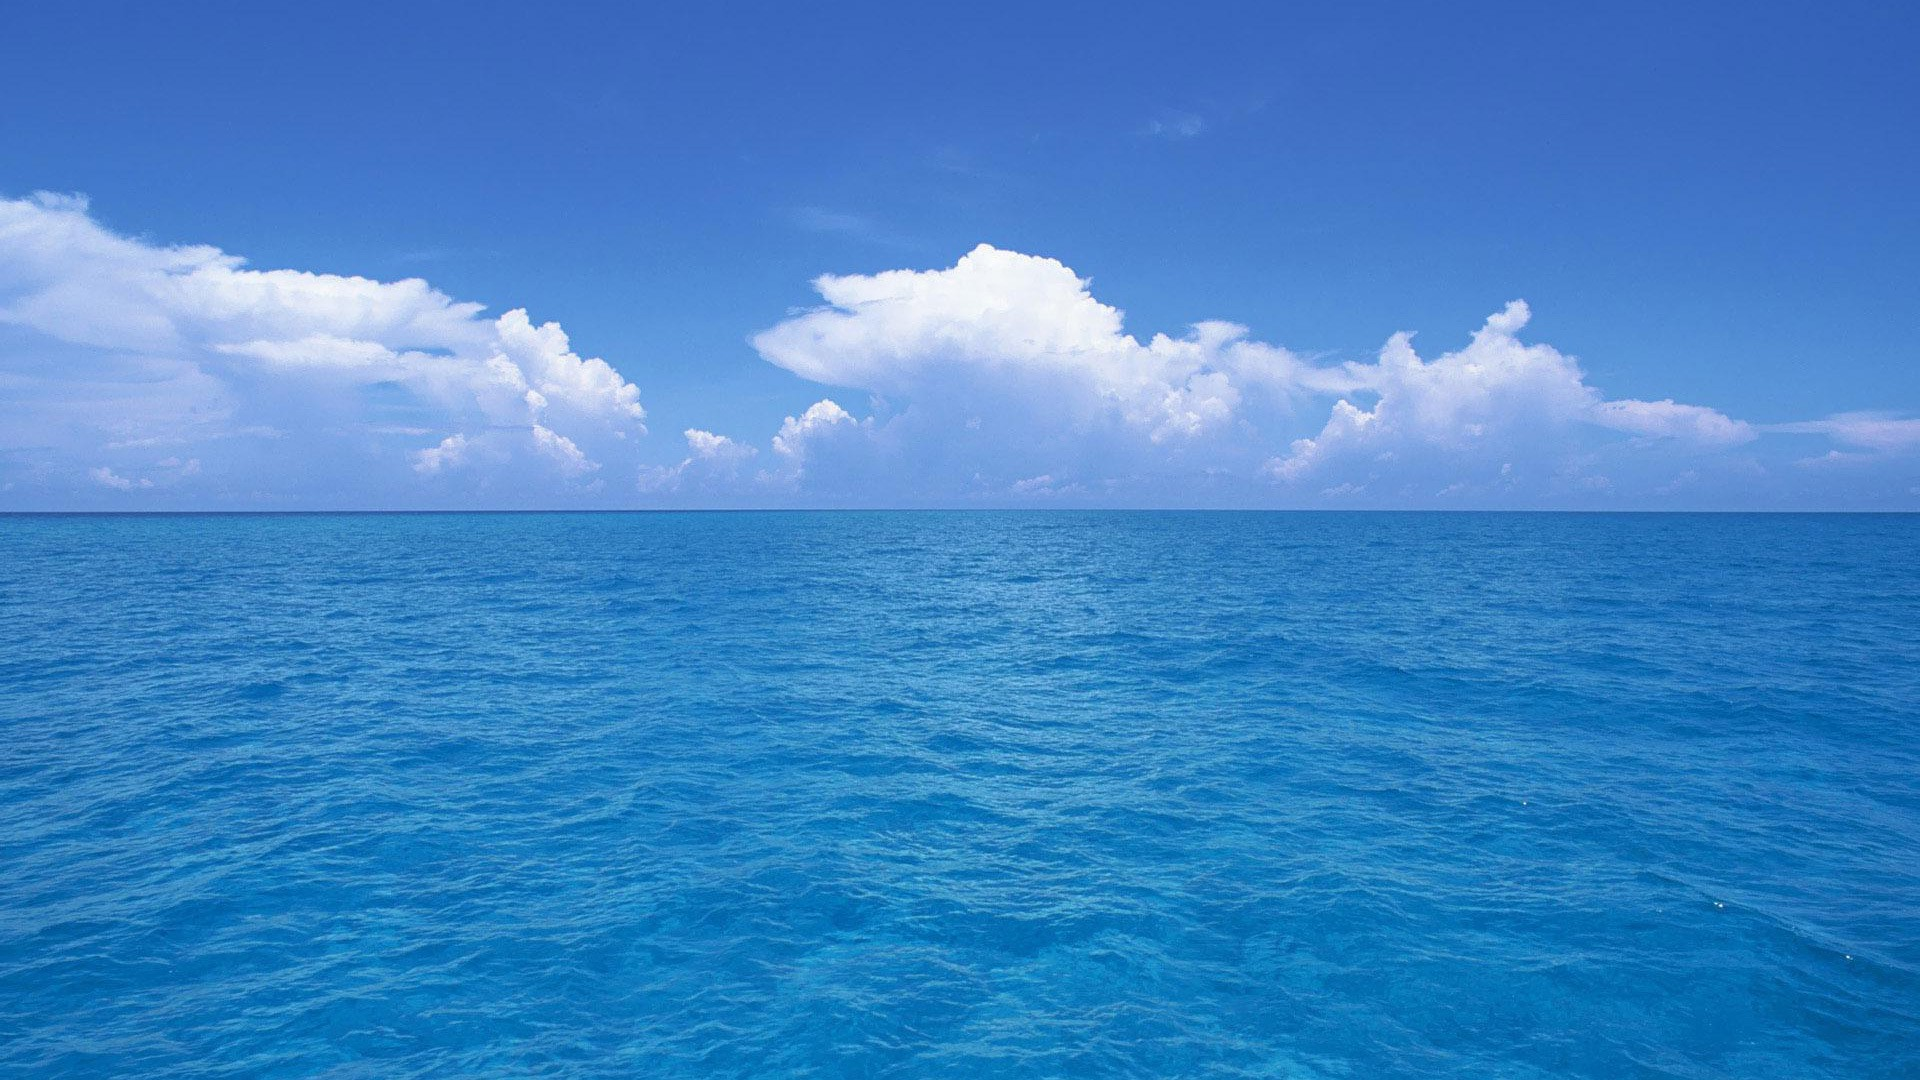 blue ocean clouds skylines sea wallpaper background 1920x1080